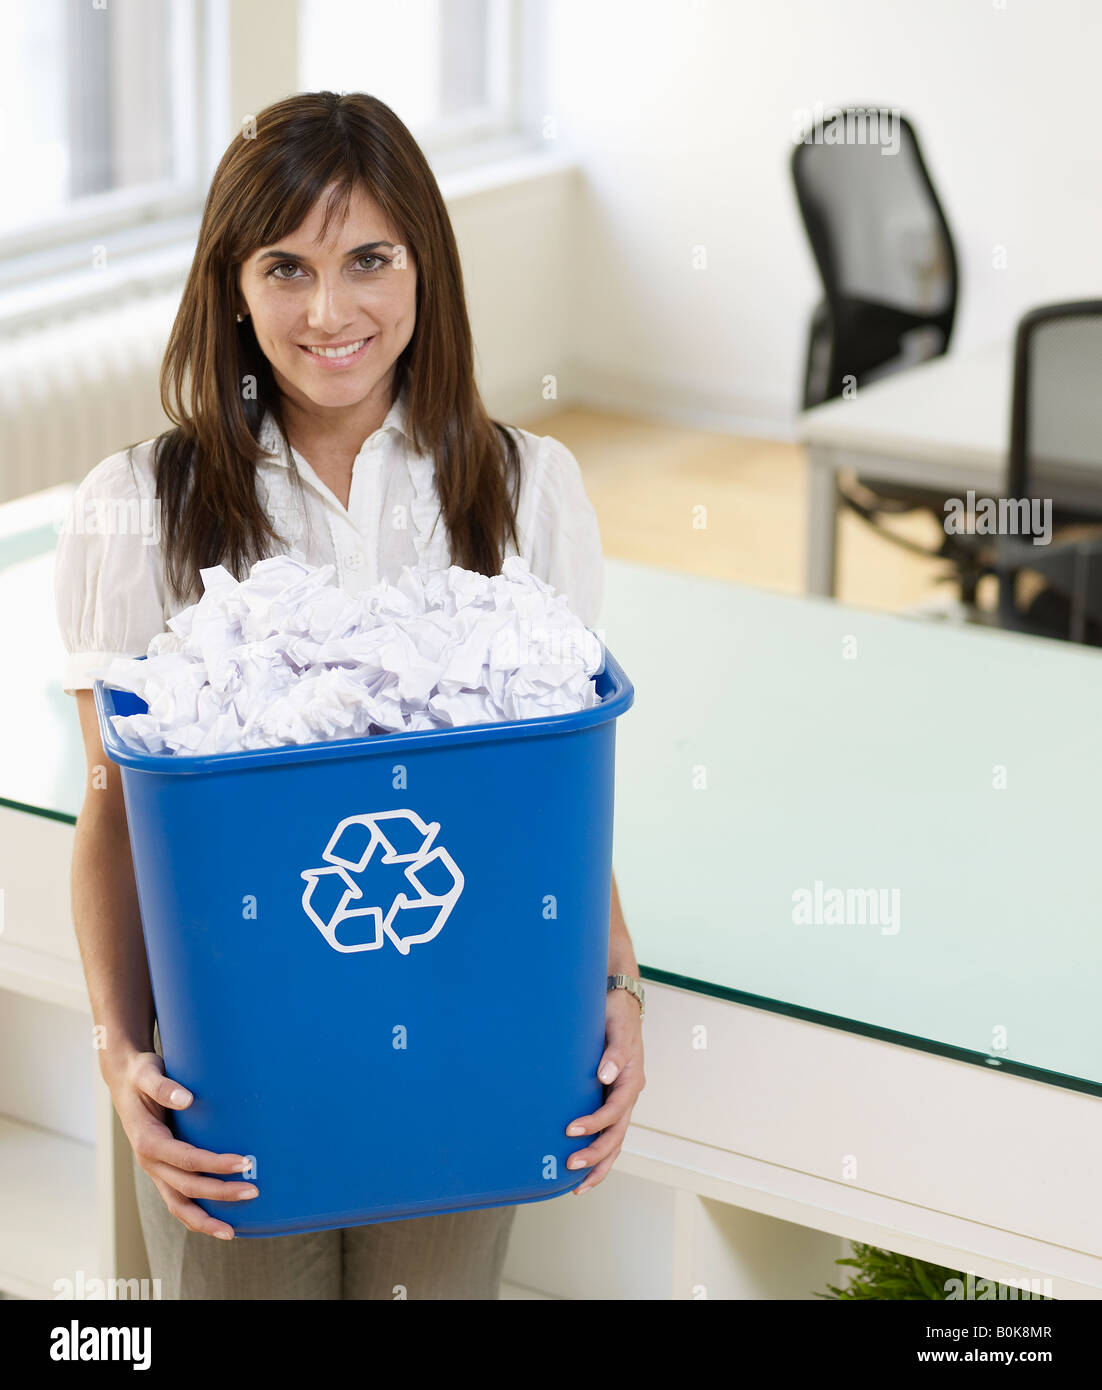 Mid-Adult Woman Holding Paper Recycling Bin Stock Photo